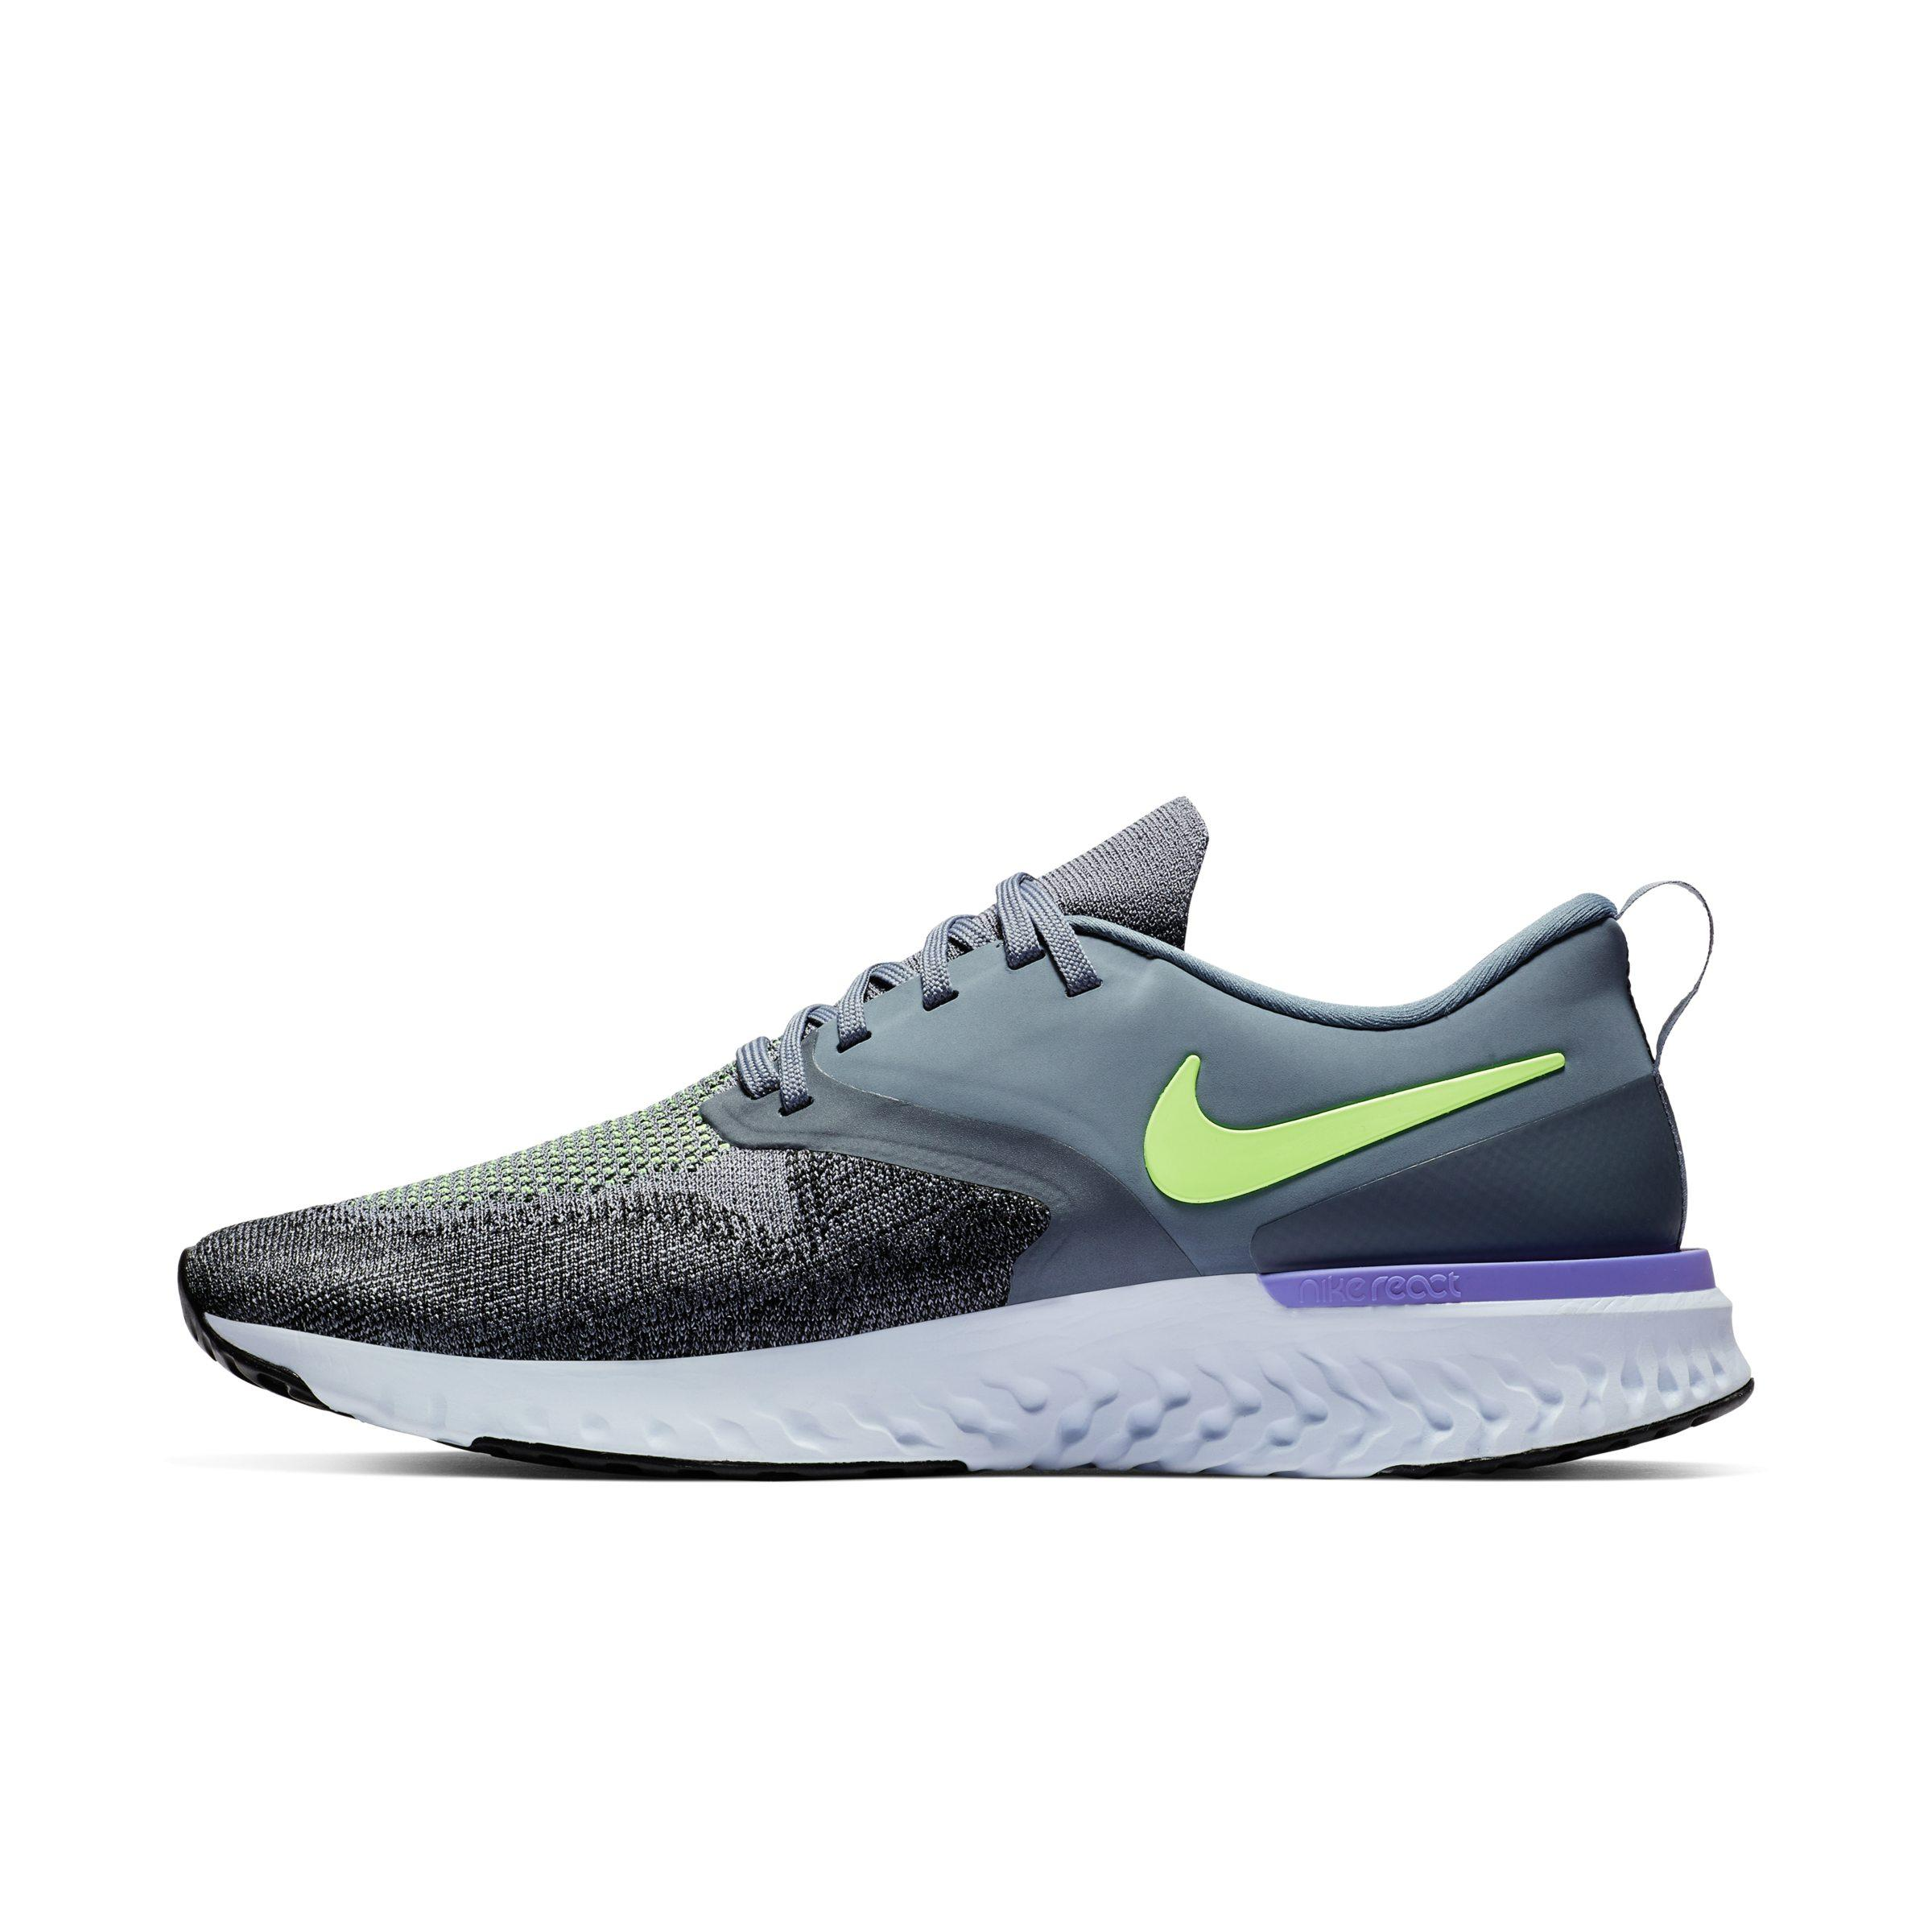 a7a277ce590d Nike Odyssey React Flyknit 2 Running Shoe in Blue for Men - Lyst